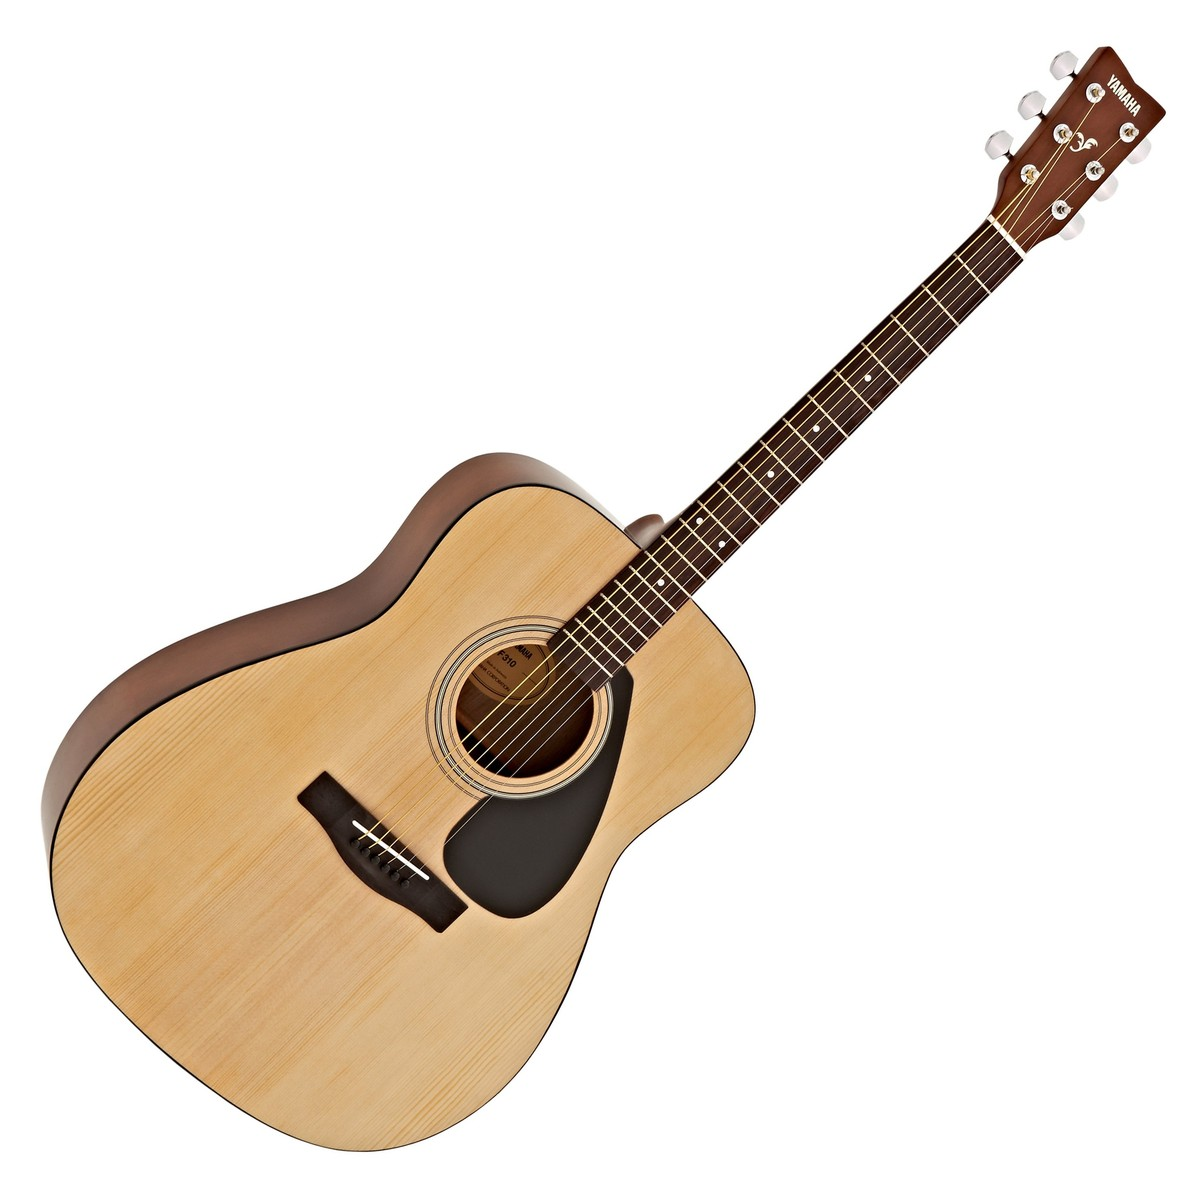 Yamaha f310p2 acoustic guitar beginners pack at for Yamaha classic guitar